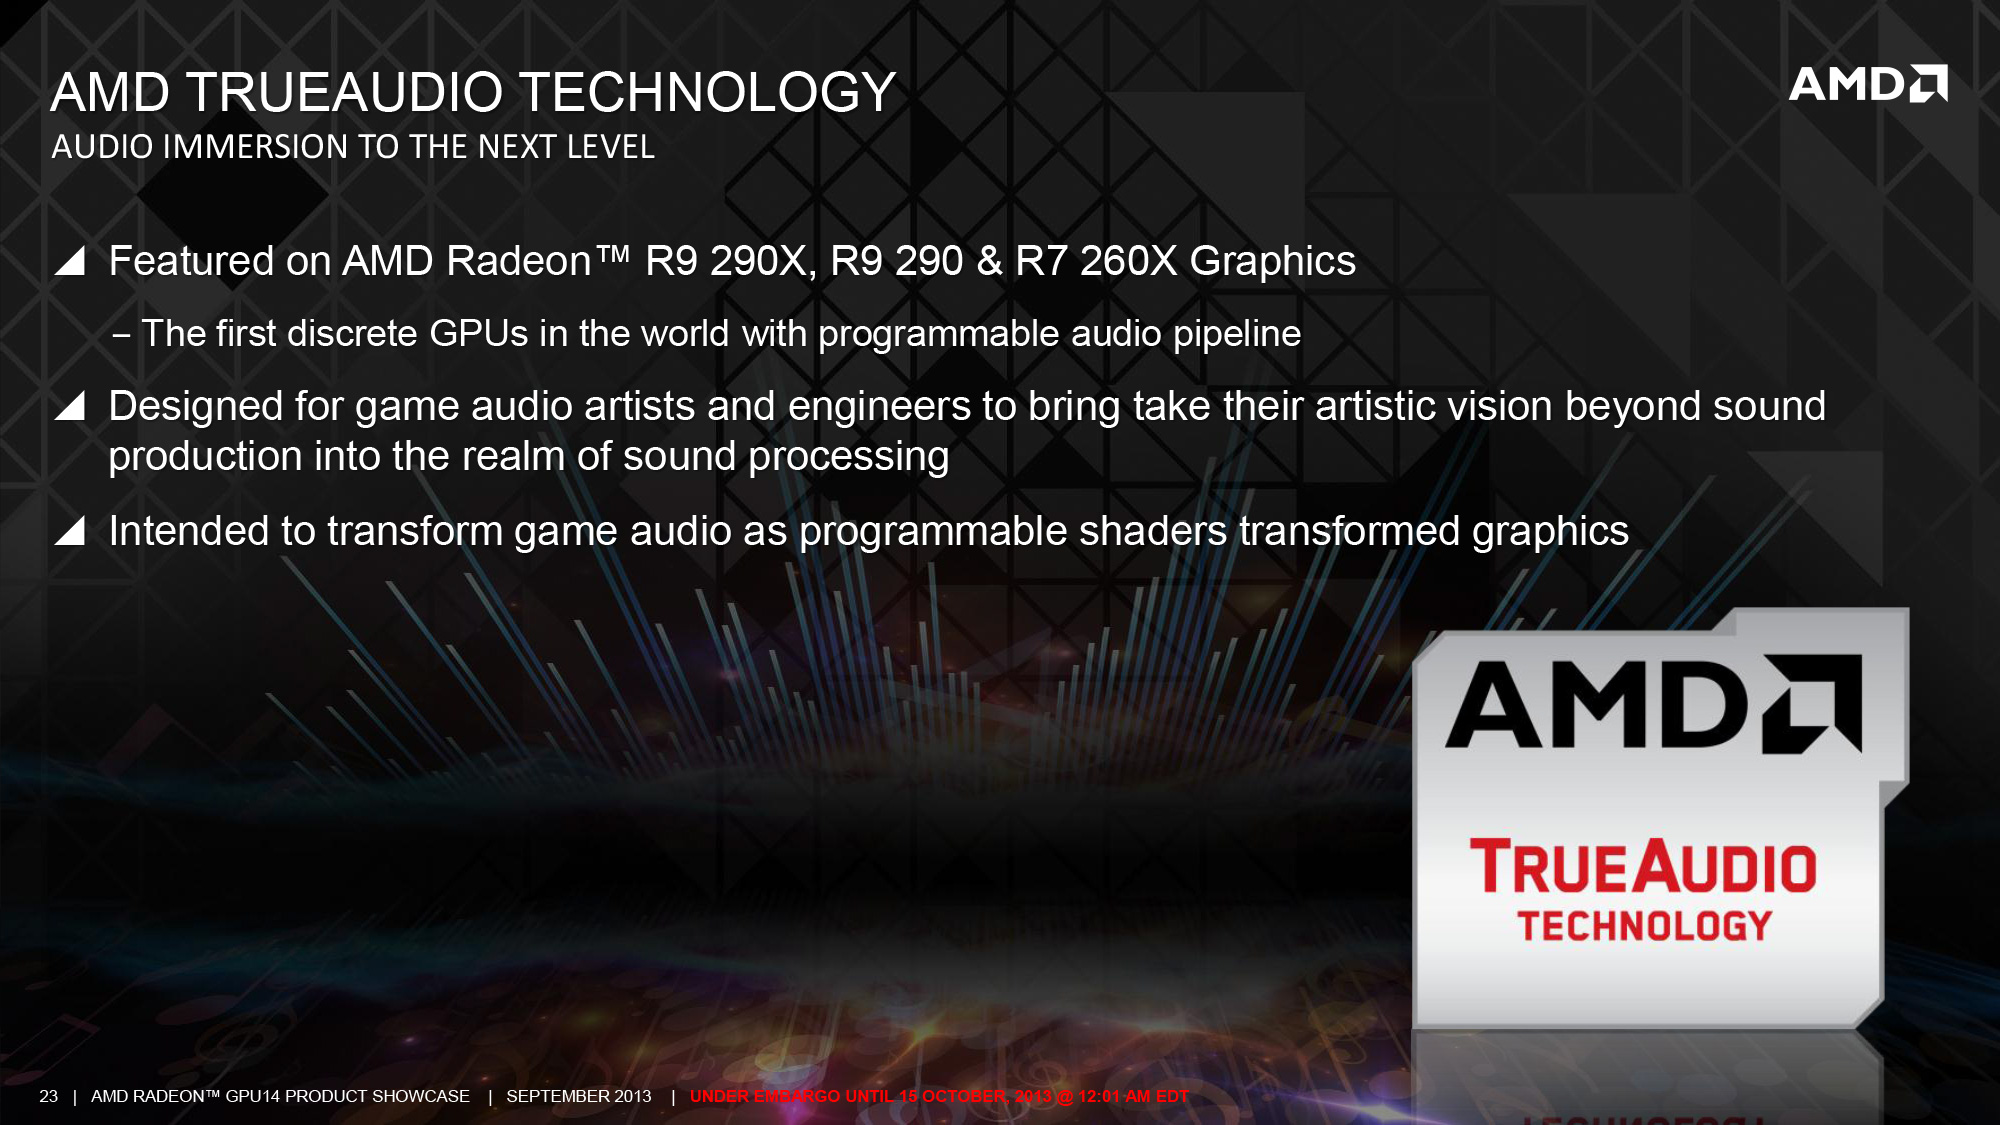 TrueAudio Technology: GPUs Get Advanced Audio Processing - The